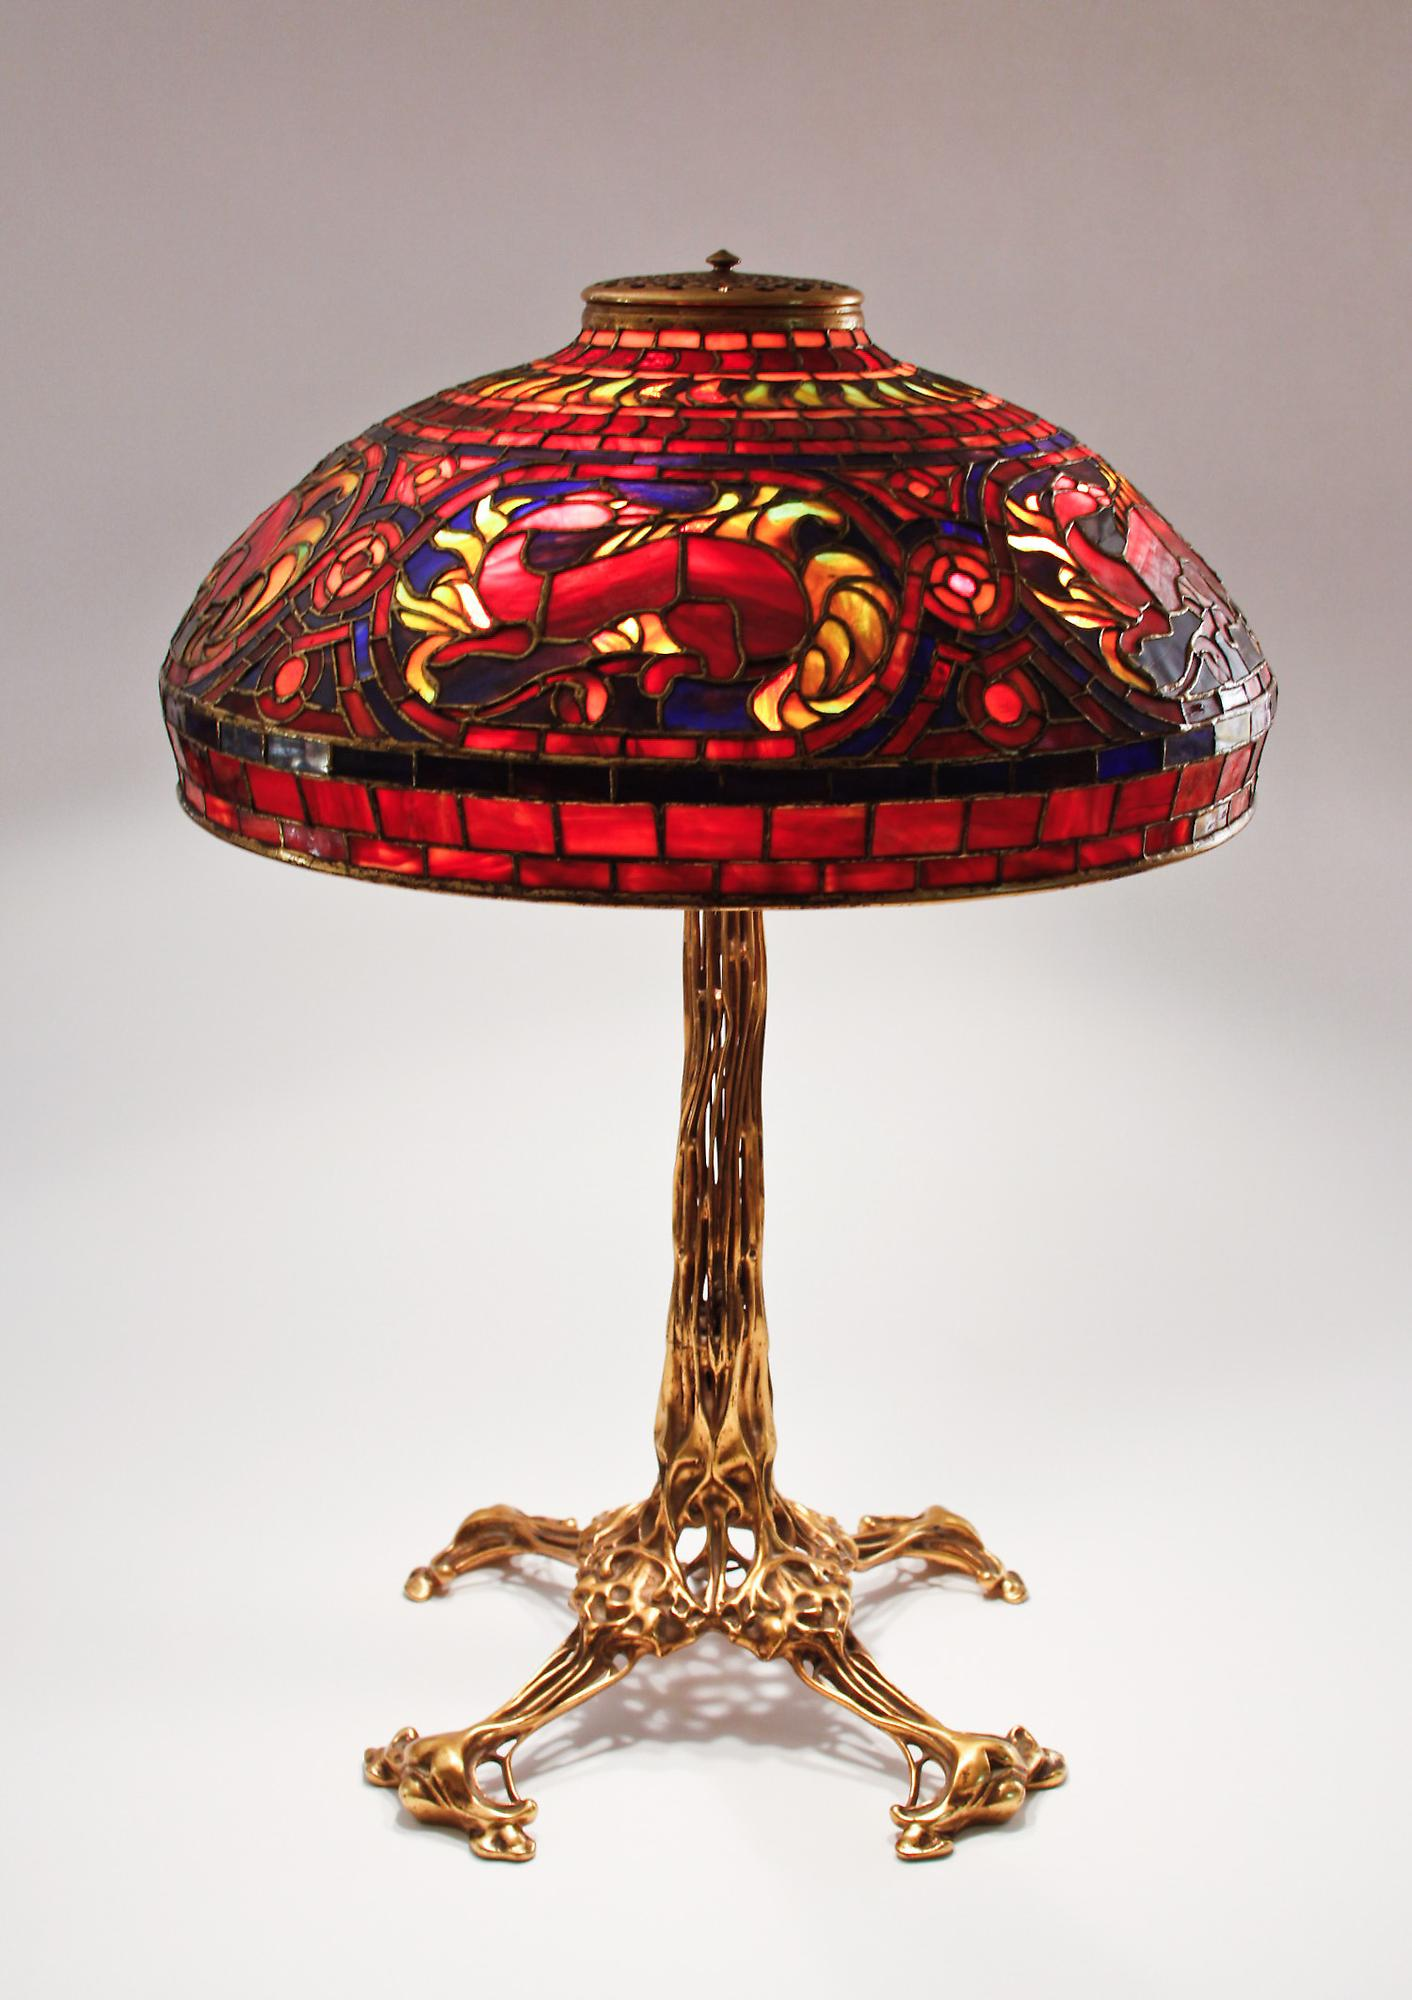 Tiffany StudiosSalamander Table Lamp 1